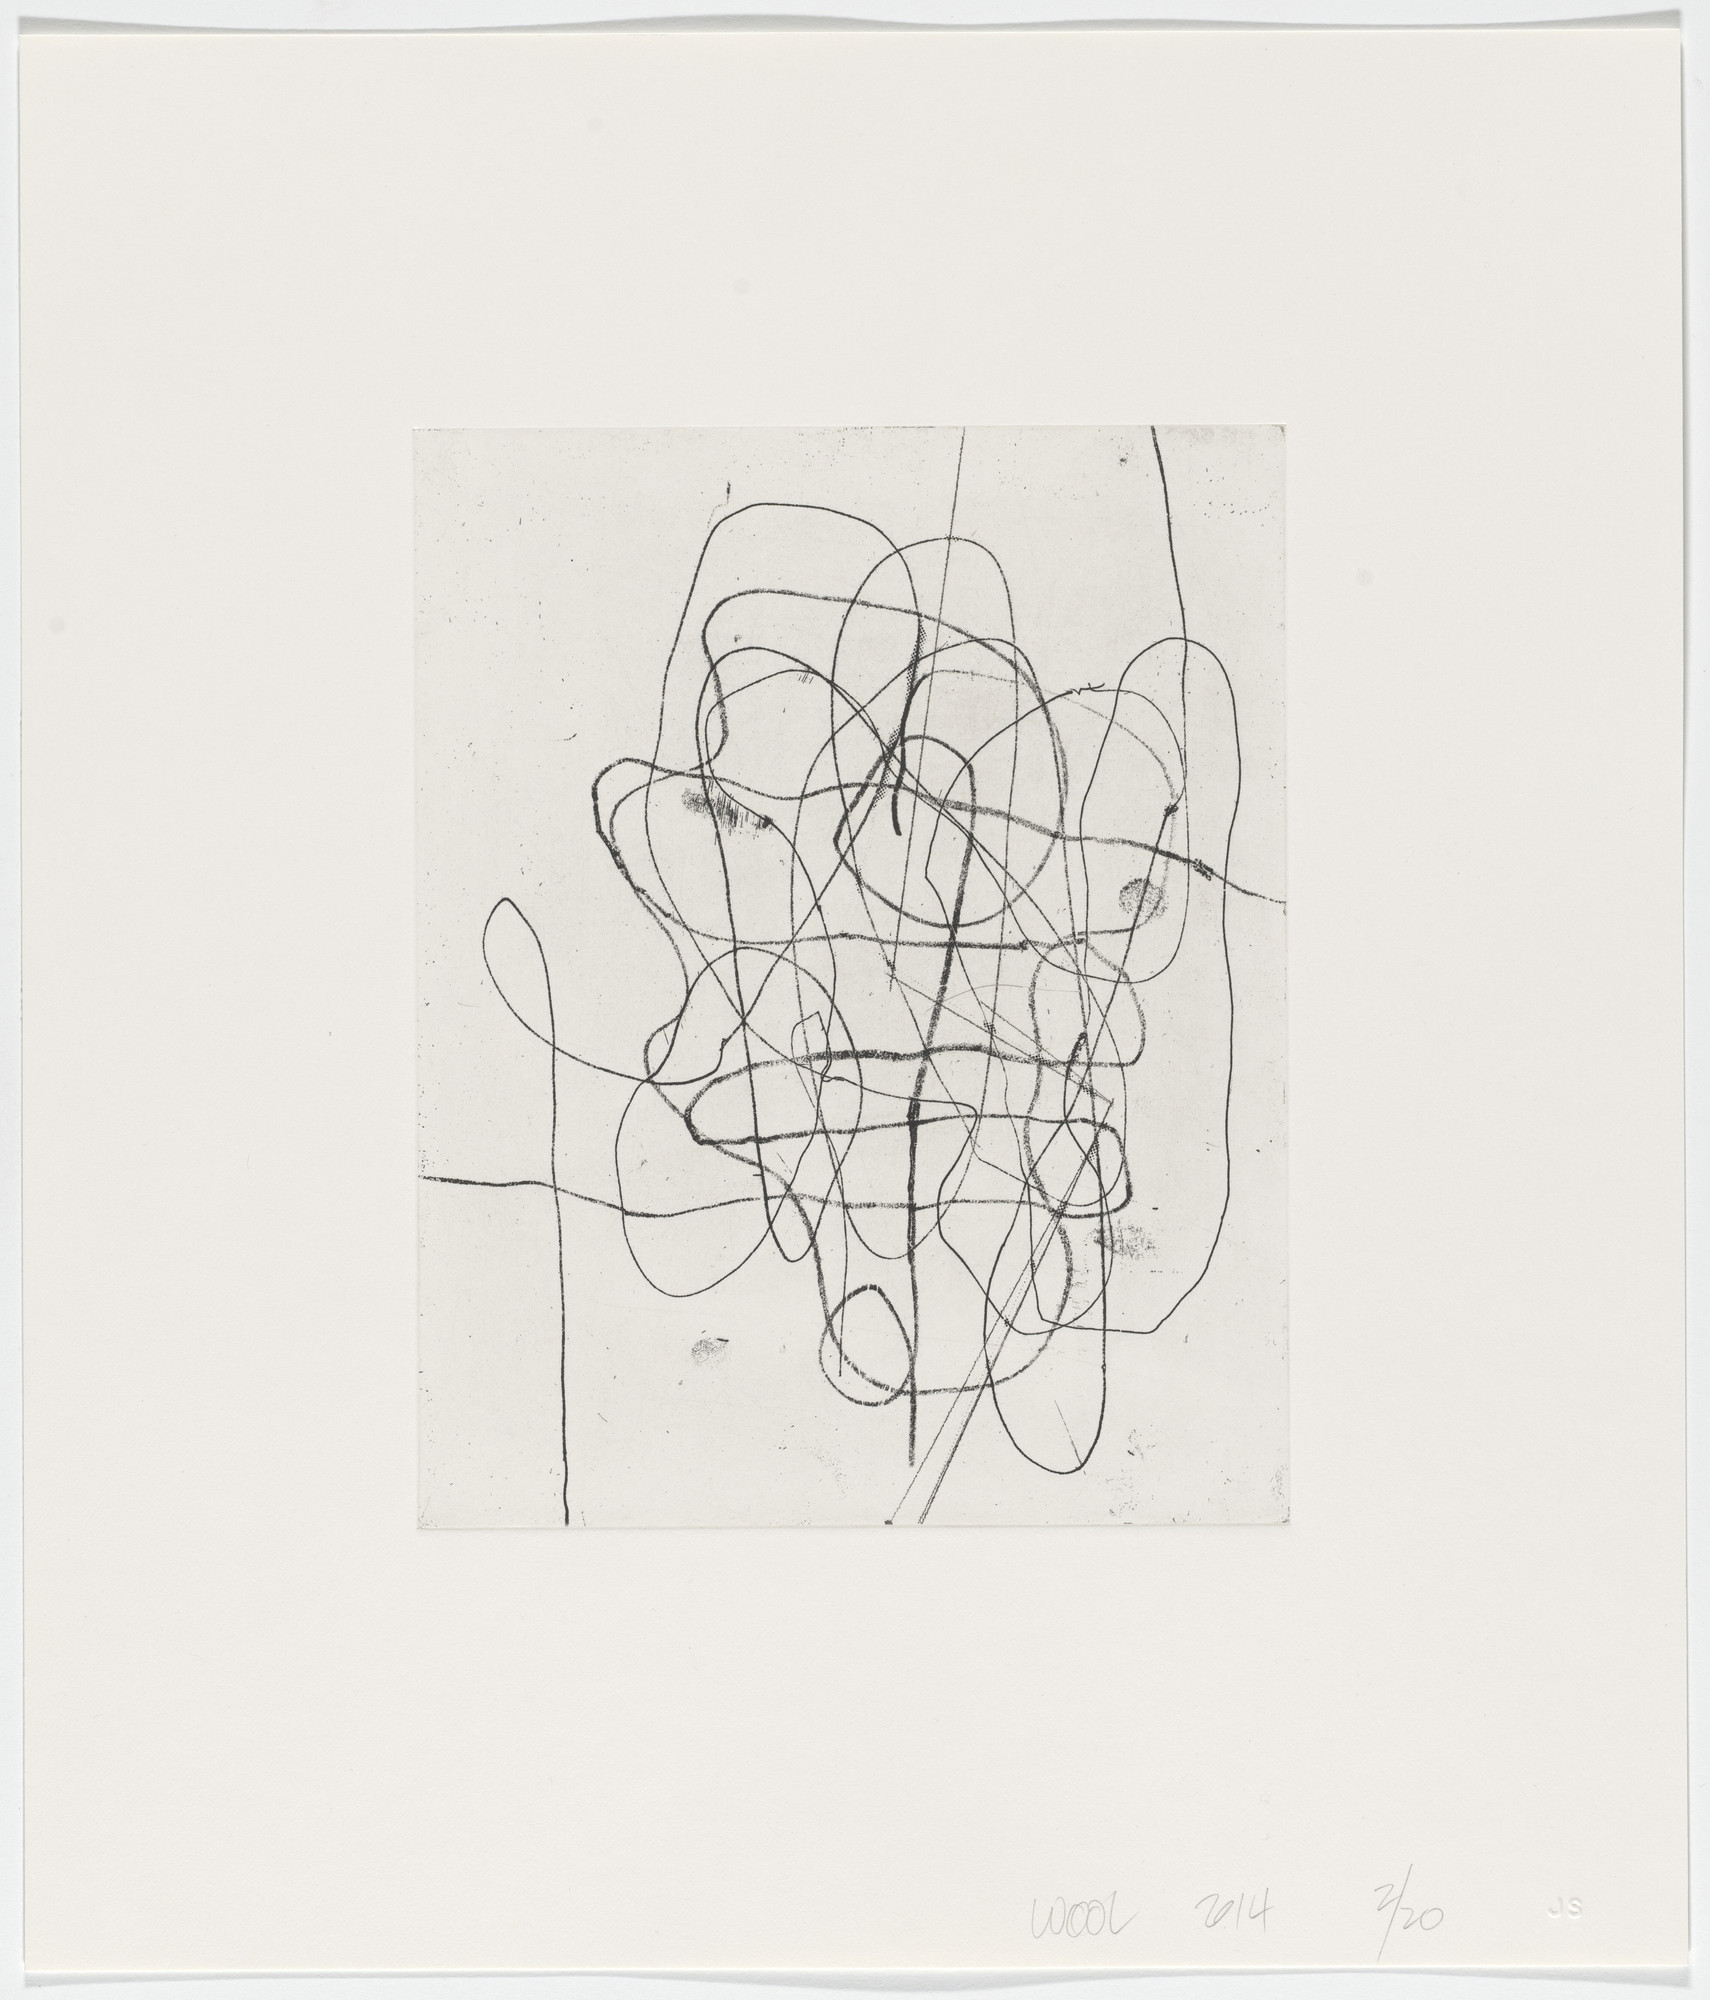 Christopher Wool. Untitled from Two Drypoints + One Softground Etching w/ Drypoint. 2014